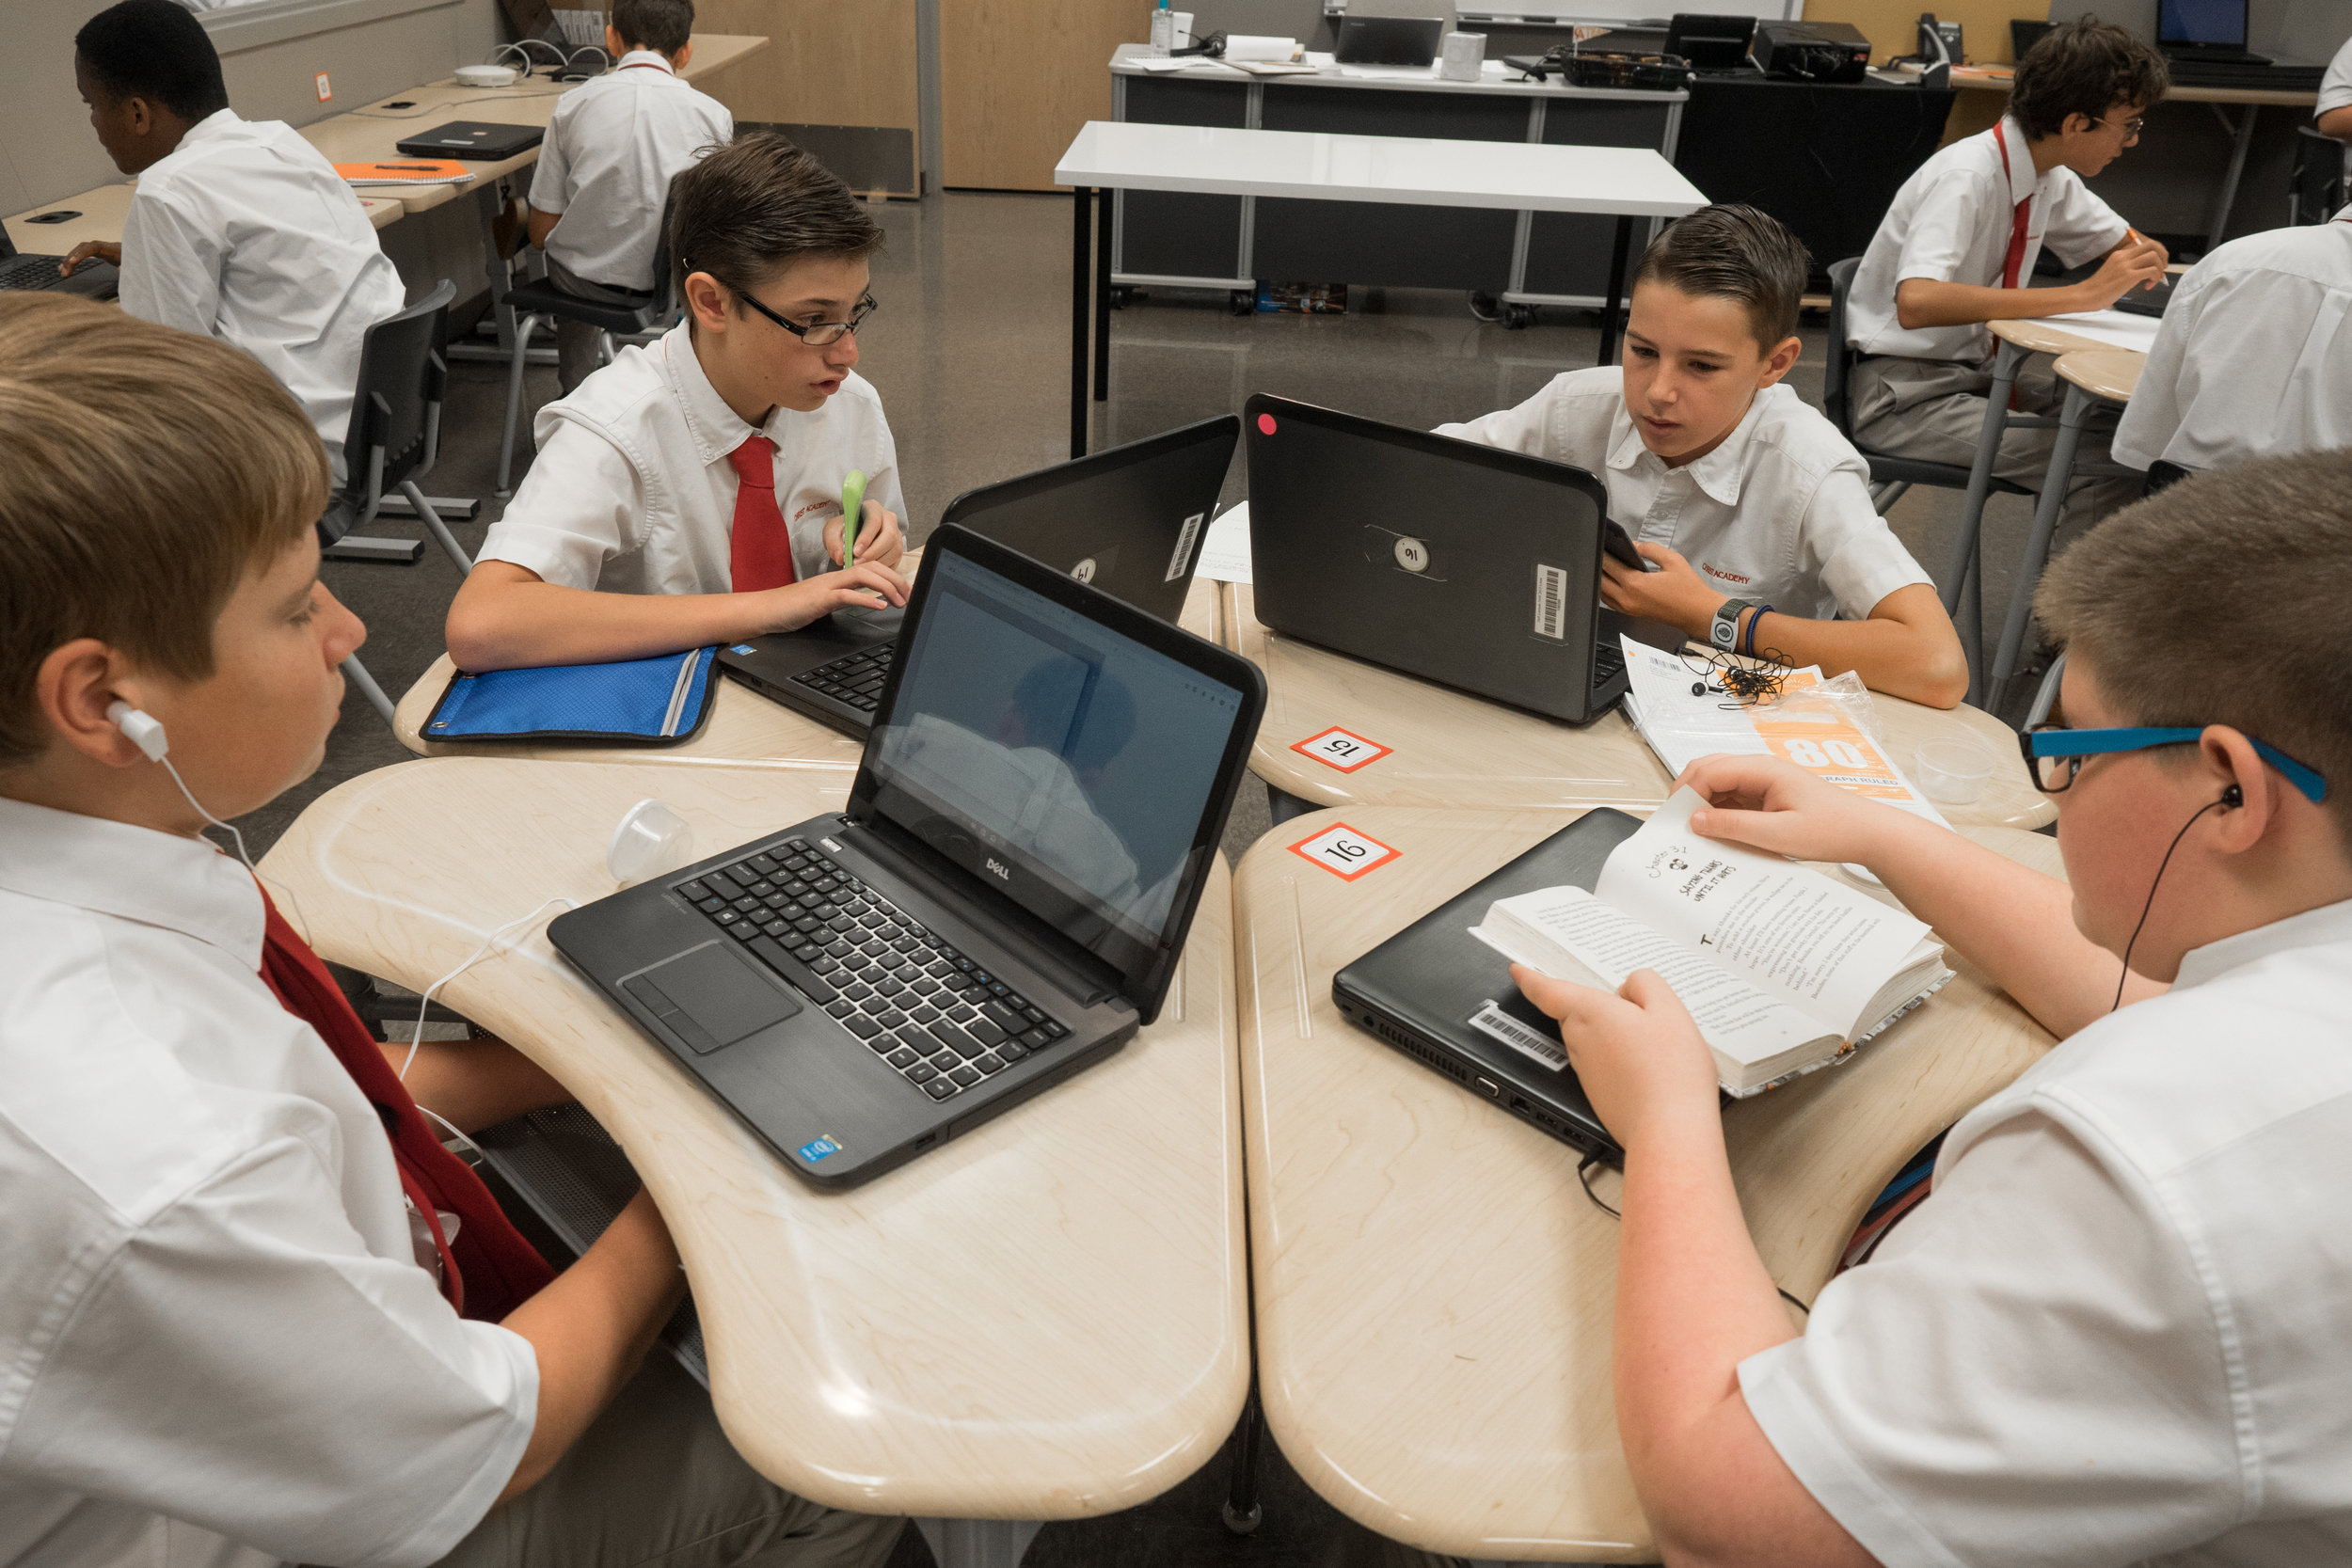 Christ Academy Technology Plan Update Immersive Windows 10 Laptops